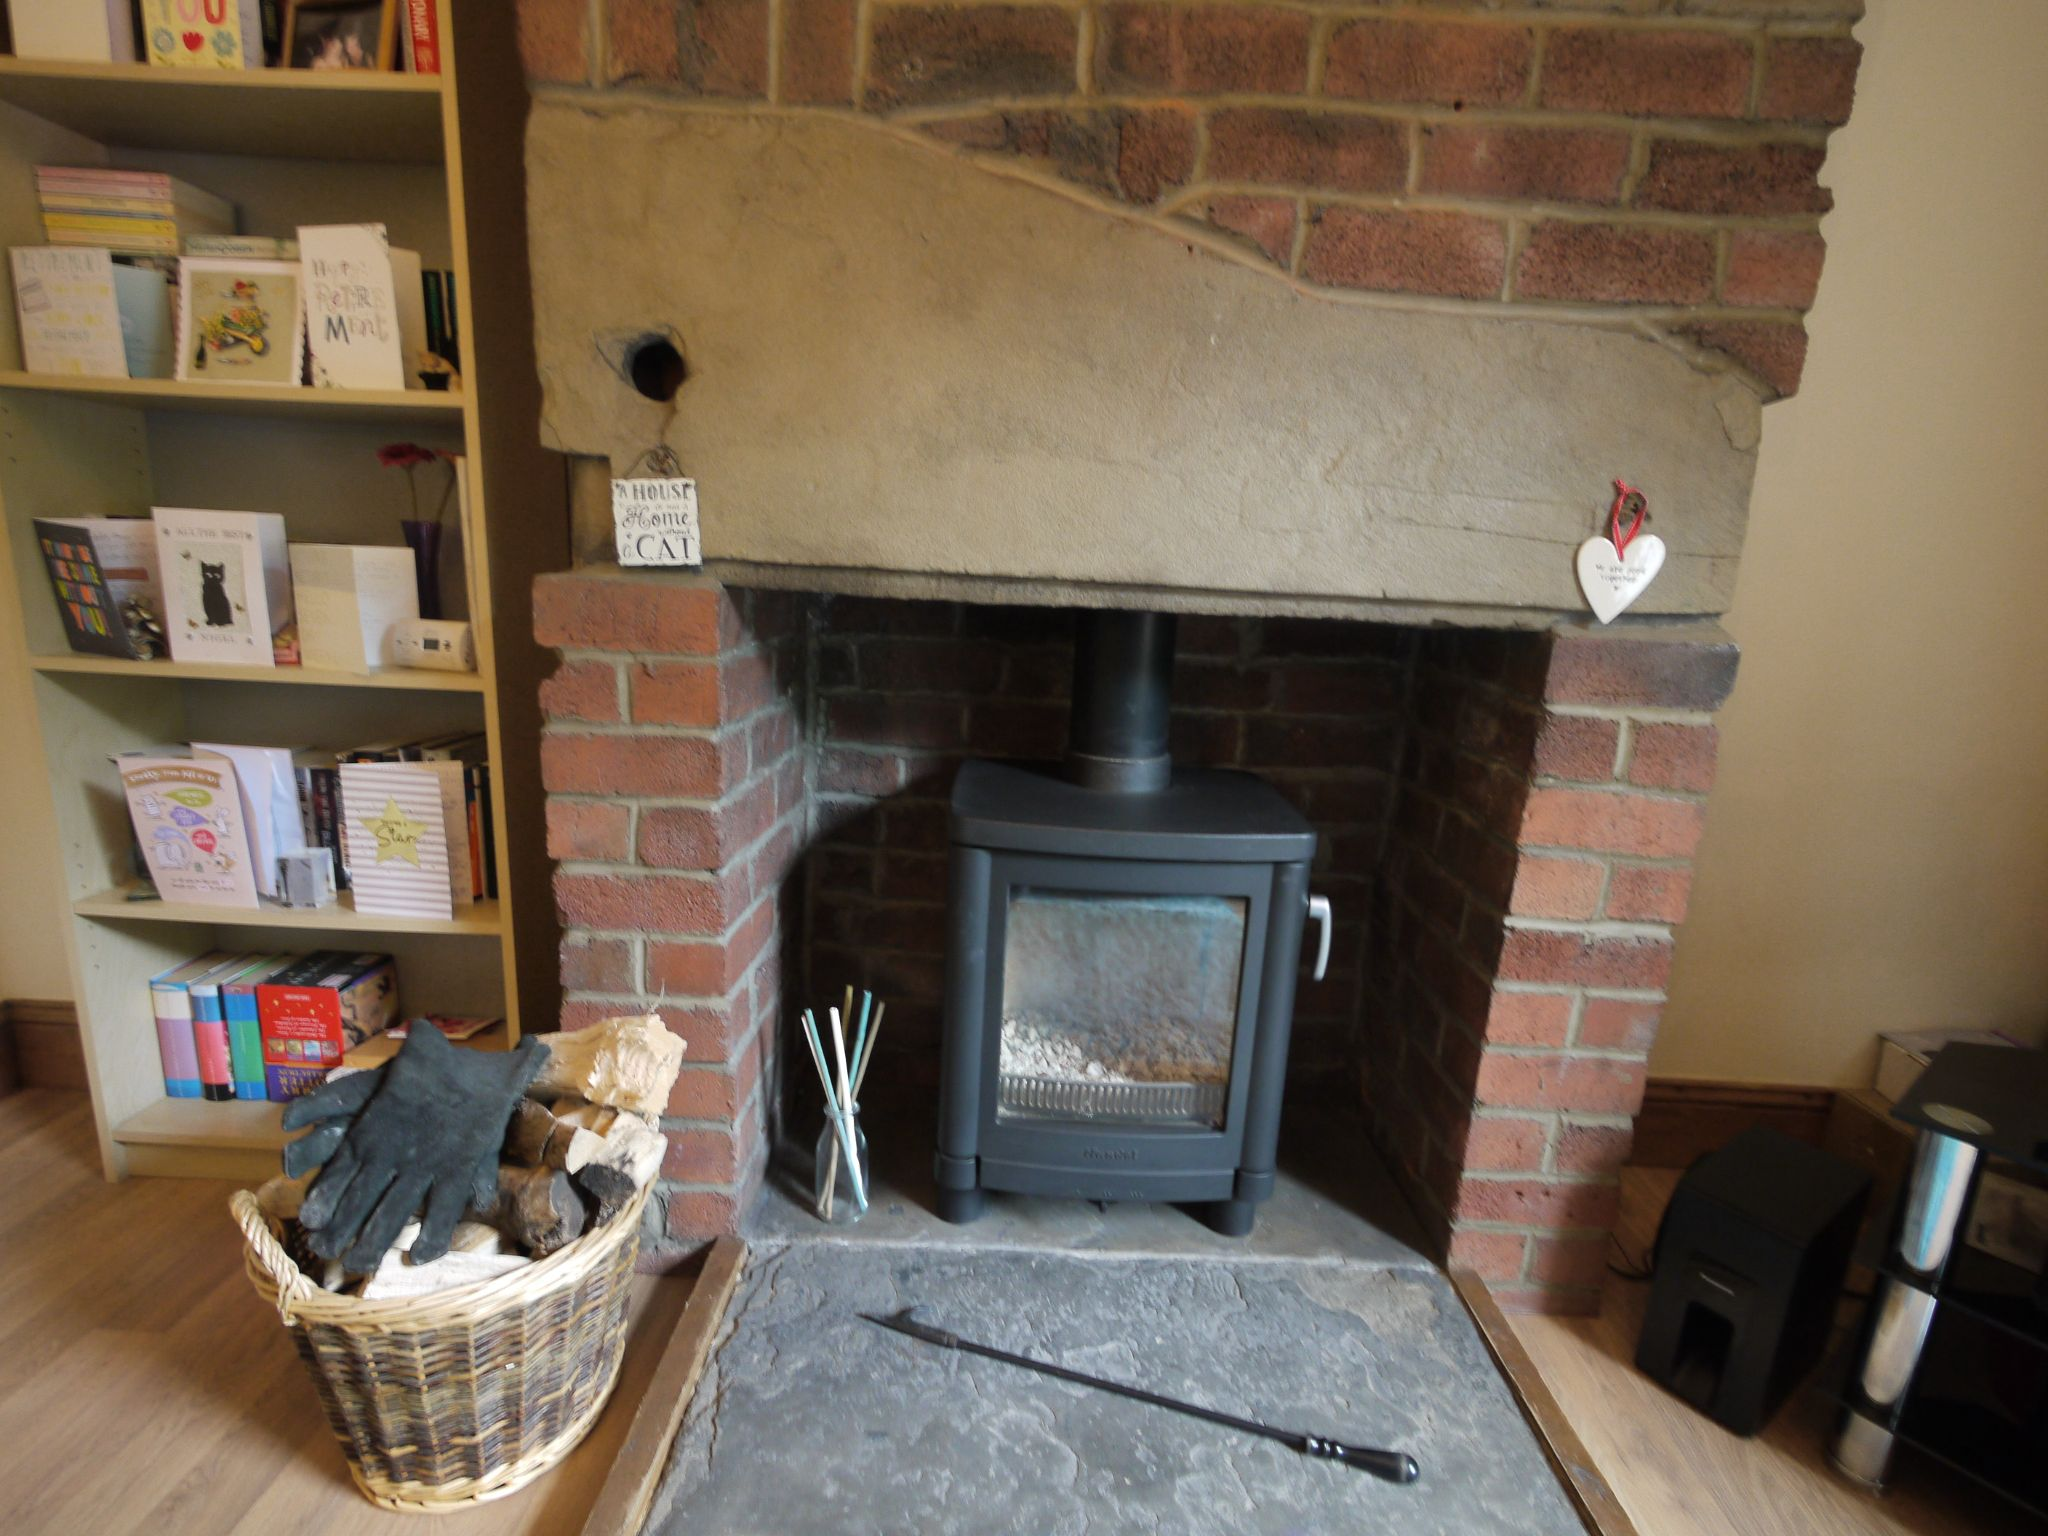 2 bedroom end terraced house SSTC in Brighouse - Fireplace.